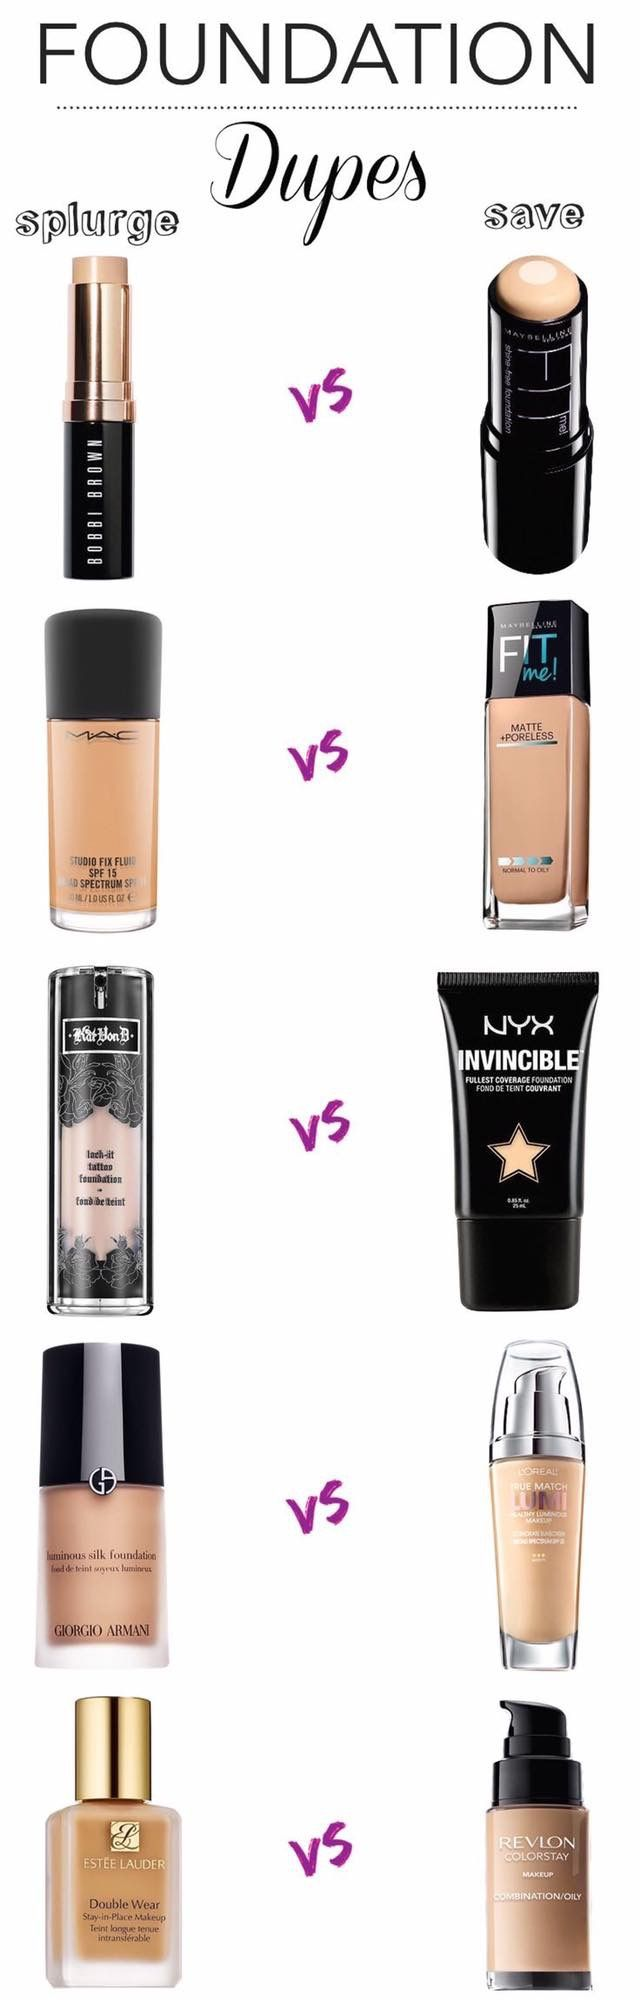 17 Best Drugstore Dupes for Expensive BeautyProducts 17 Best Drugstore Dupes for Expensive BeautyProducts new photo